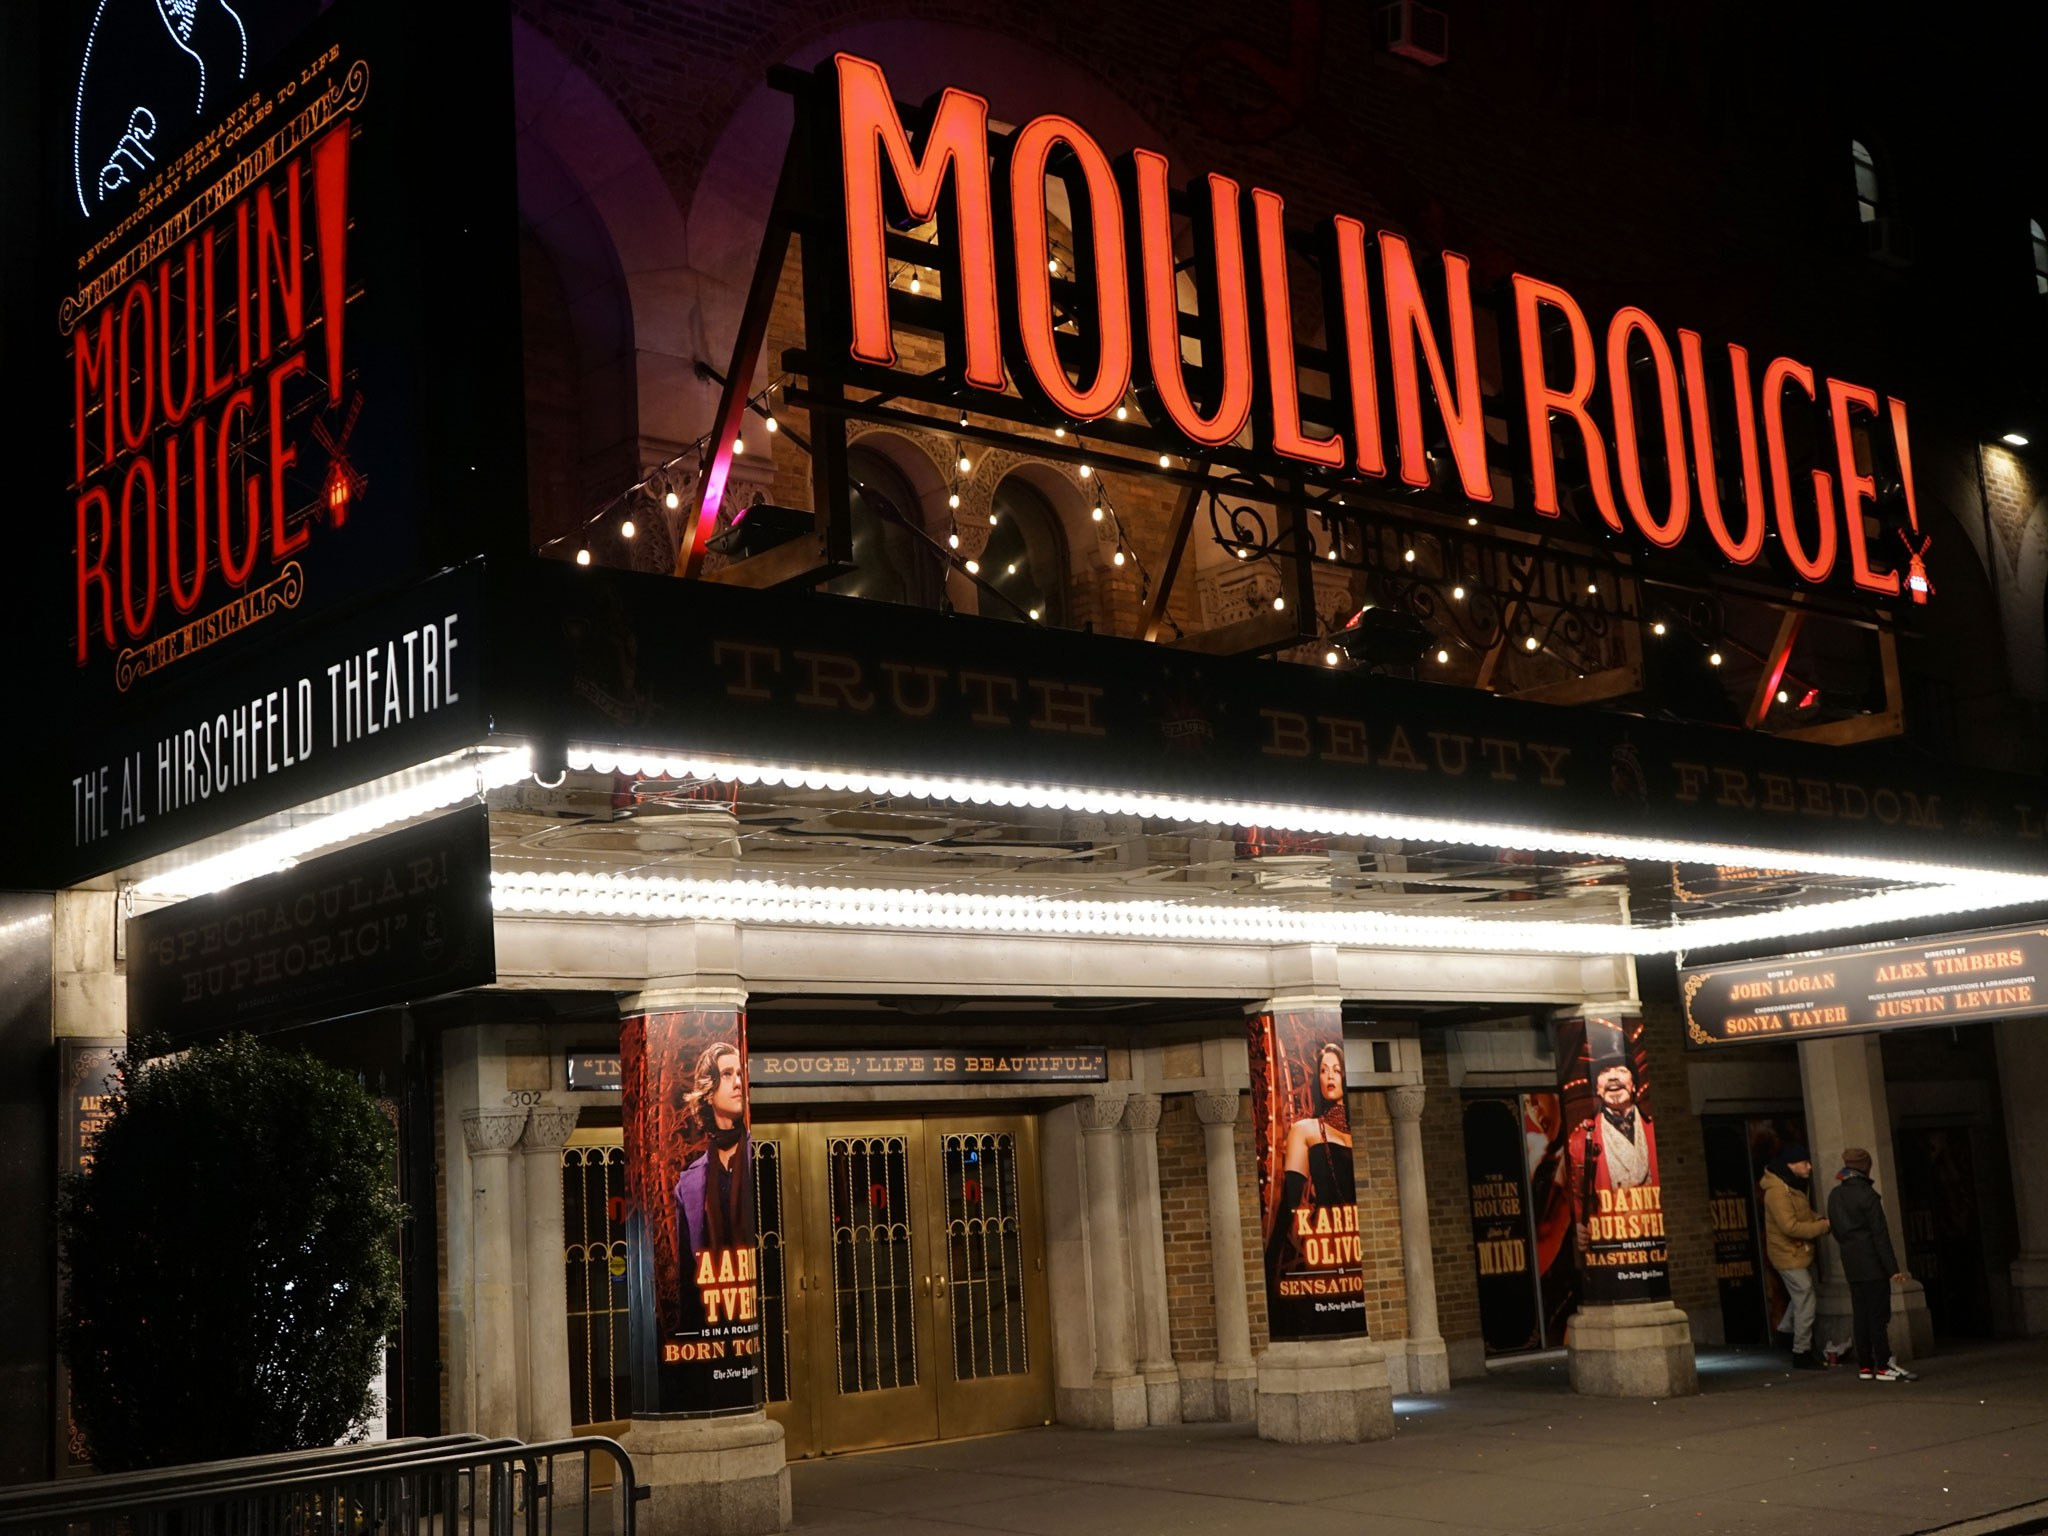 Moulin Rouge Theatre Marquee